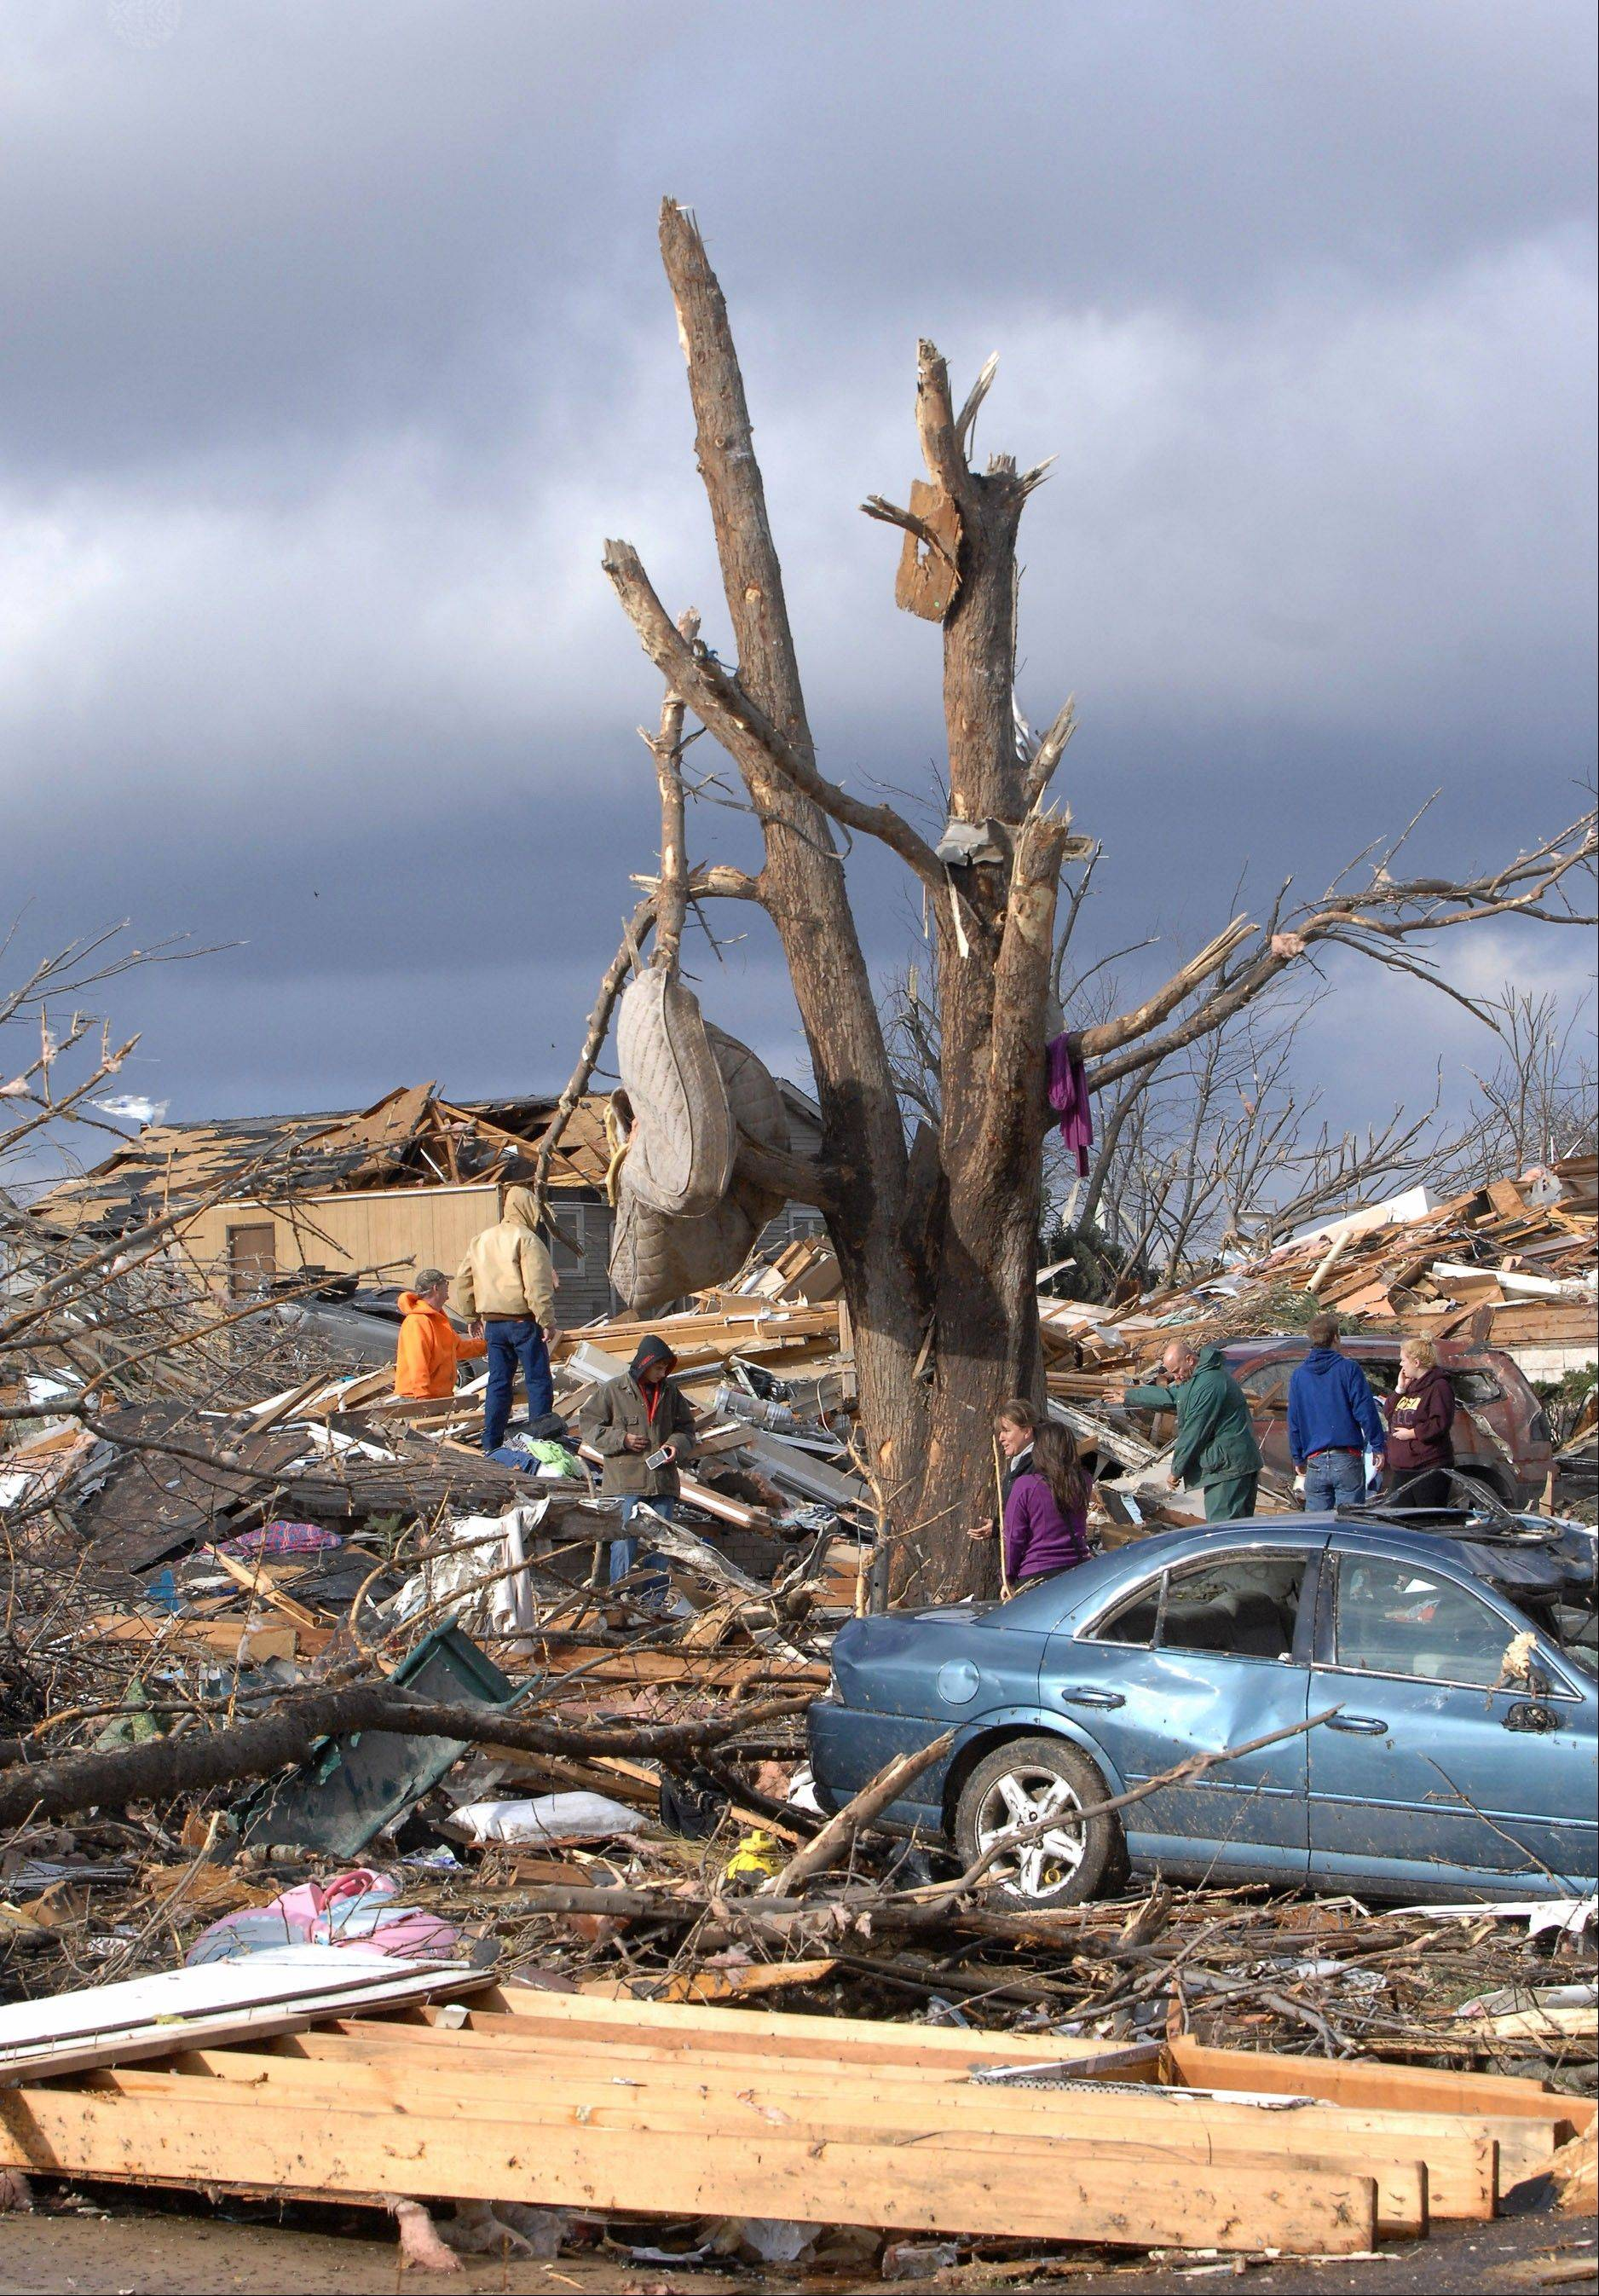 A mattress is wrapped around a stripped tree in Washington, Ill., Sunday, Nov. 17, 2013. Intense thunderstorms and tornadoes swept across the Midwest, causing extensive damage in several central Illinois communities while sending people to their basements for shelter.